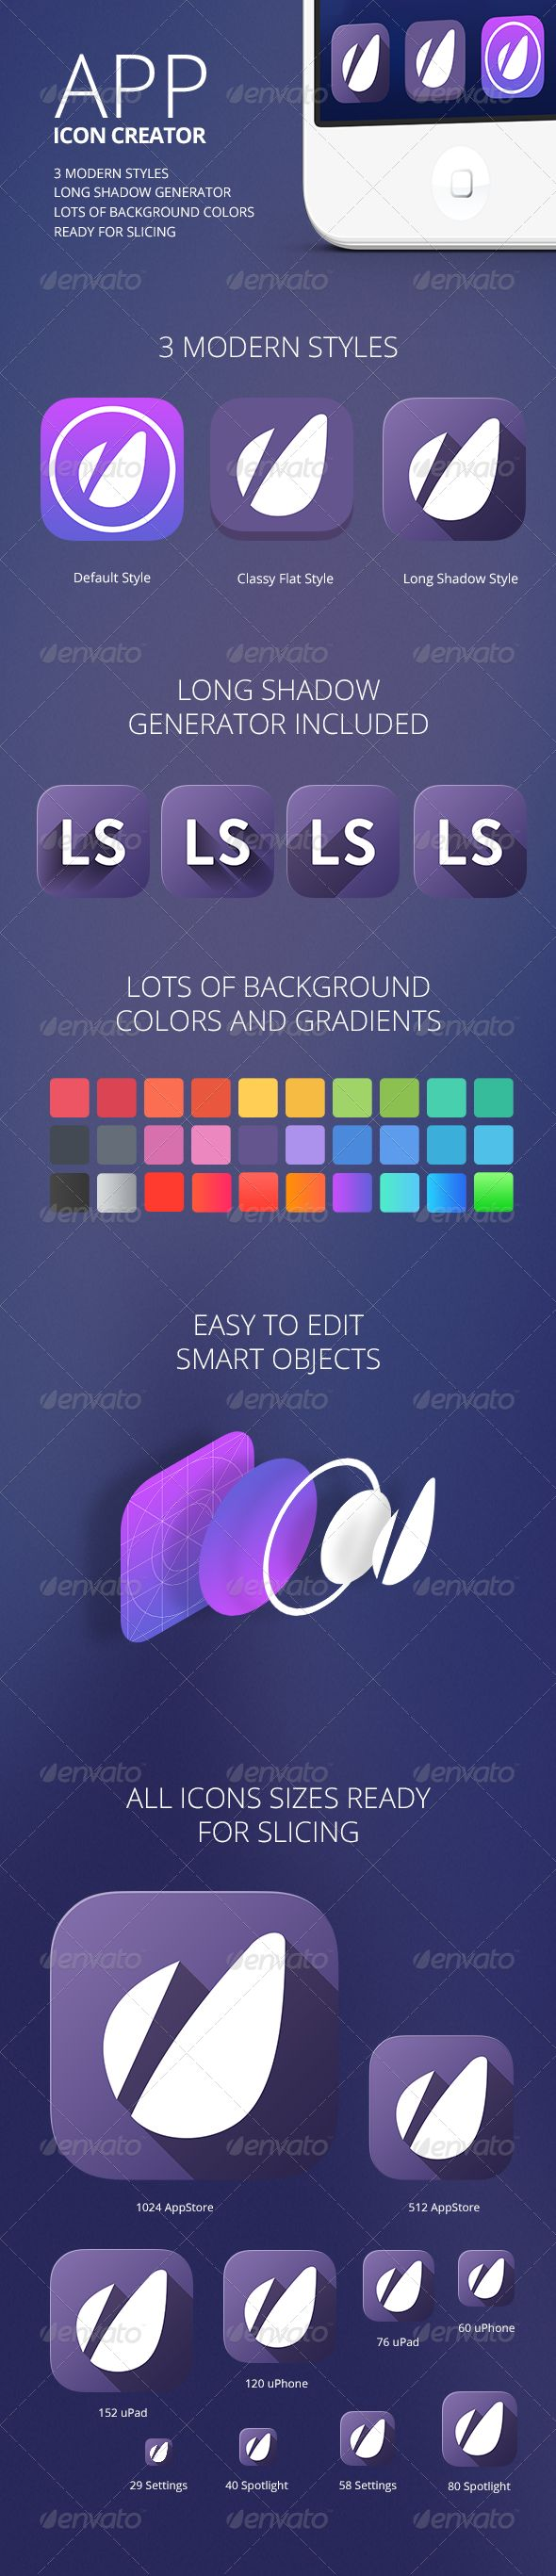 App Icon Creator with Flat Shadow Generator | Buy and Download: http://graphicriver.net/item/app-icon-creator-with-flat-shadow-generator/5803947?WT.ac=category_thumb&WT.z_author=wearesometimes&ref=ksioks